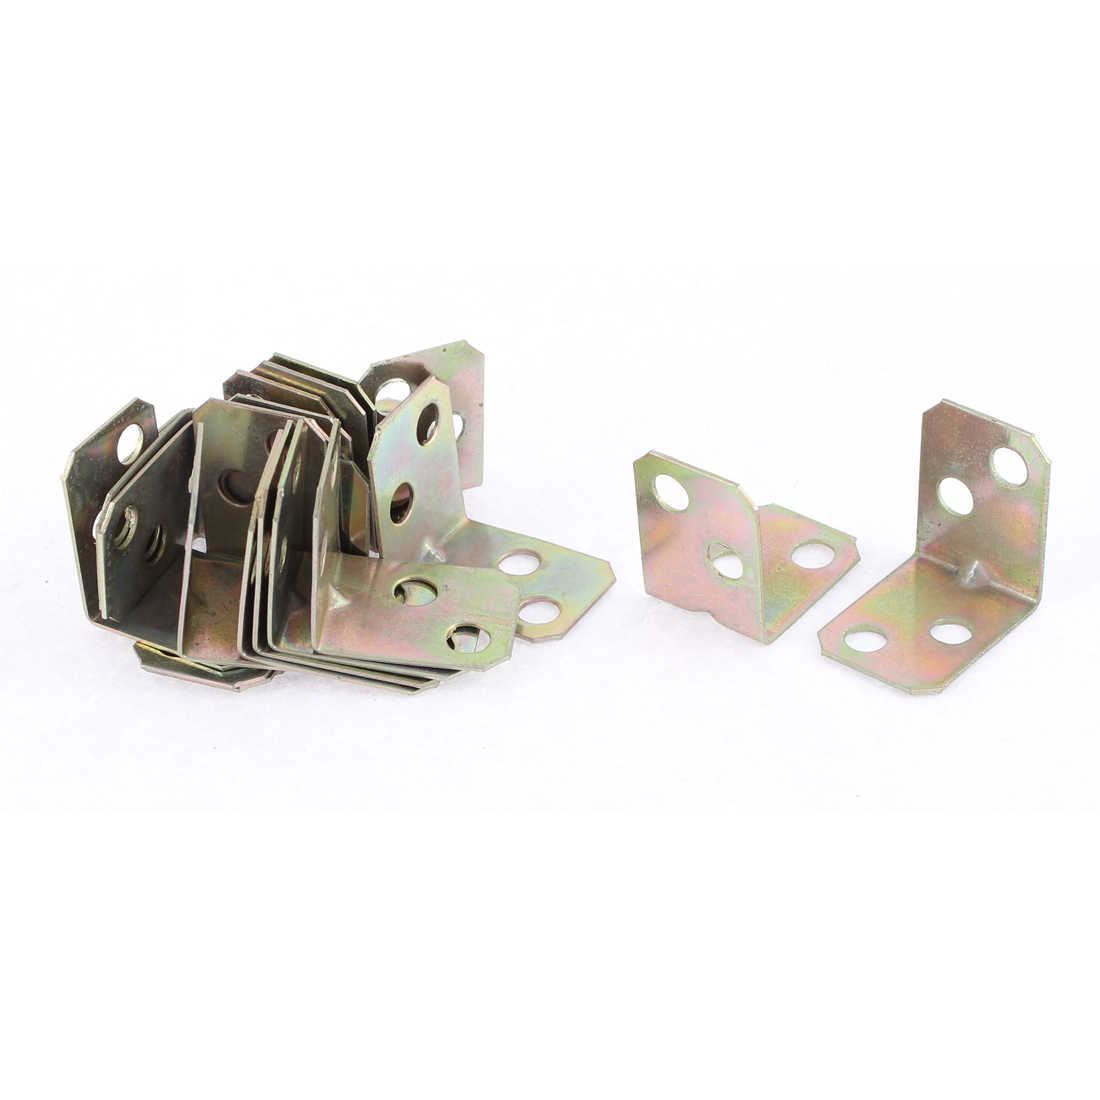 Furniture Door 90 Degree Corner Angle Brackets Fasteners Support 16x16x20mm 20pcs